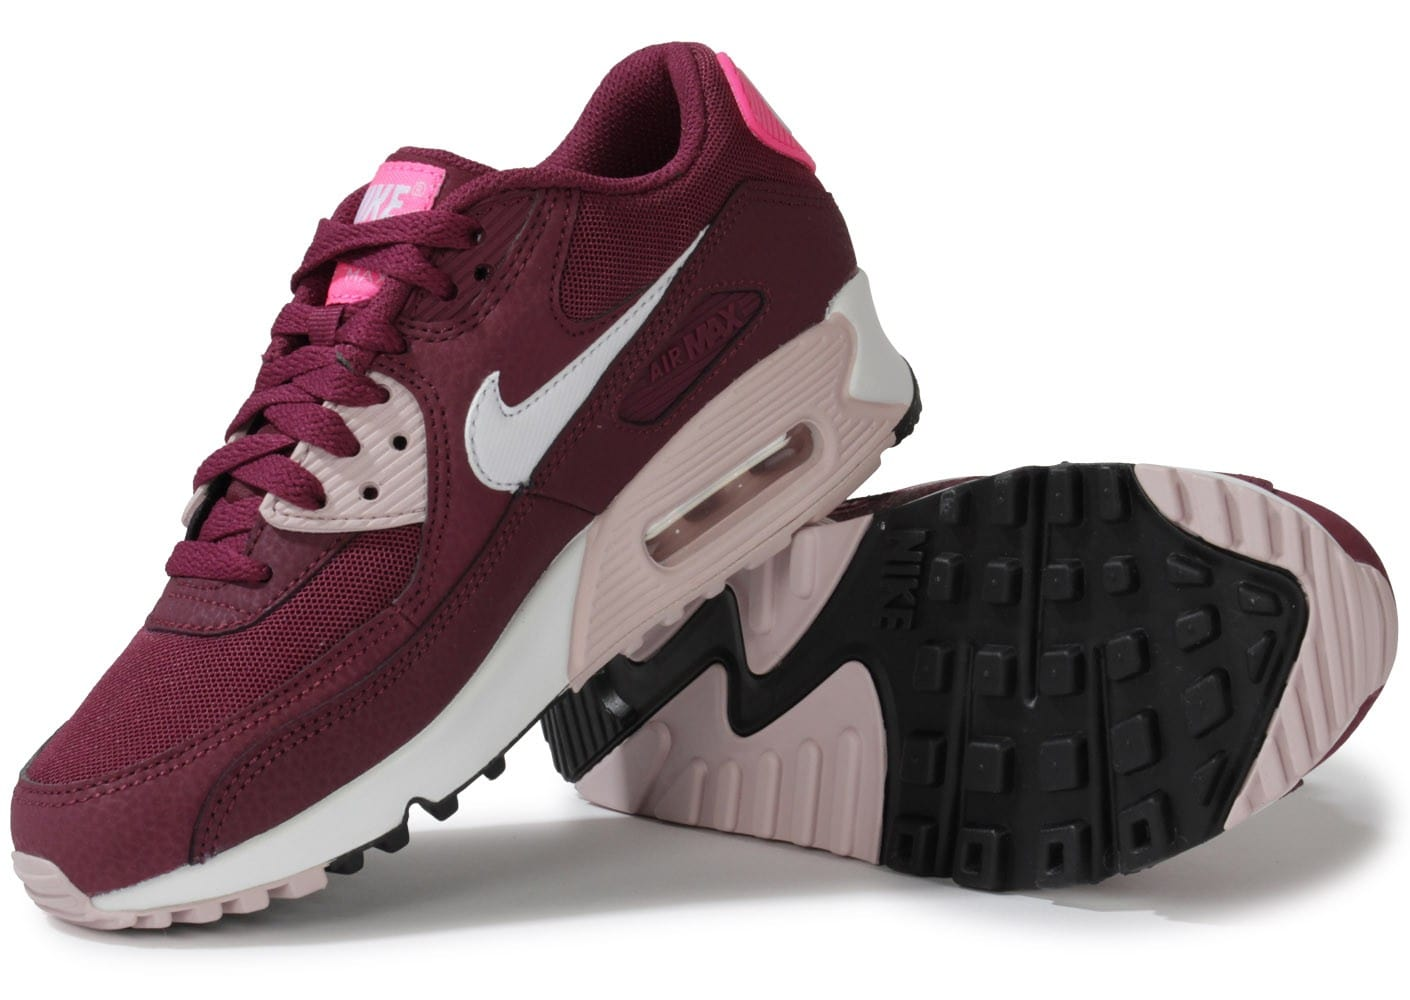 nike air max 90 essential villain red chaussures chaussures chausport. Black Bedroom Furniture Sets. Home Design Ideas